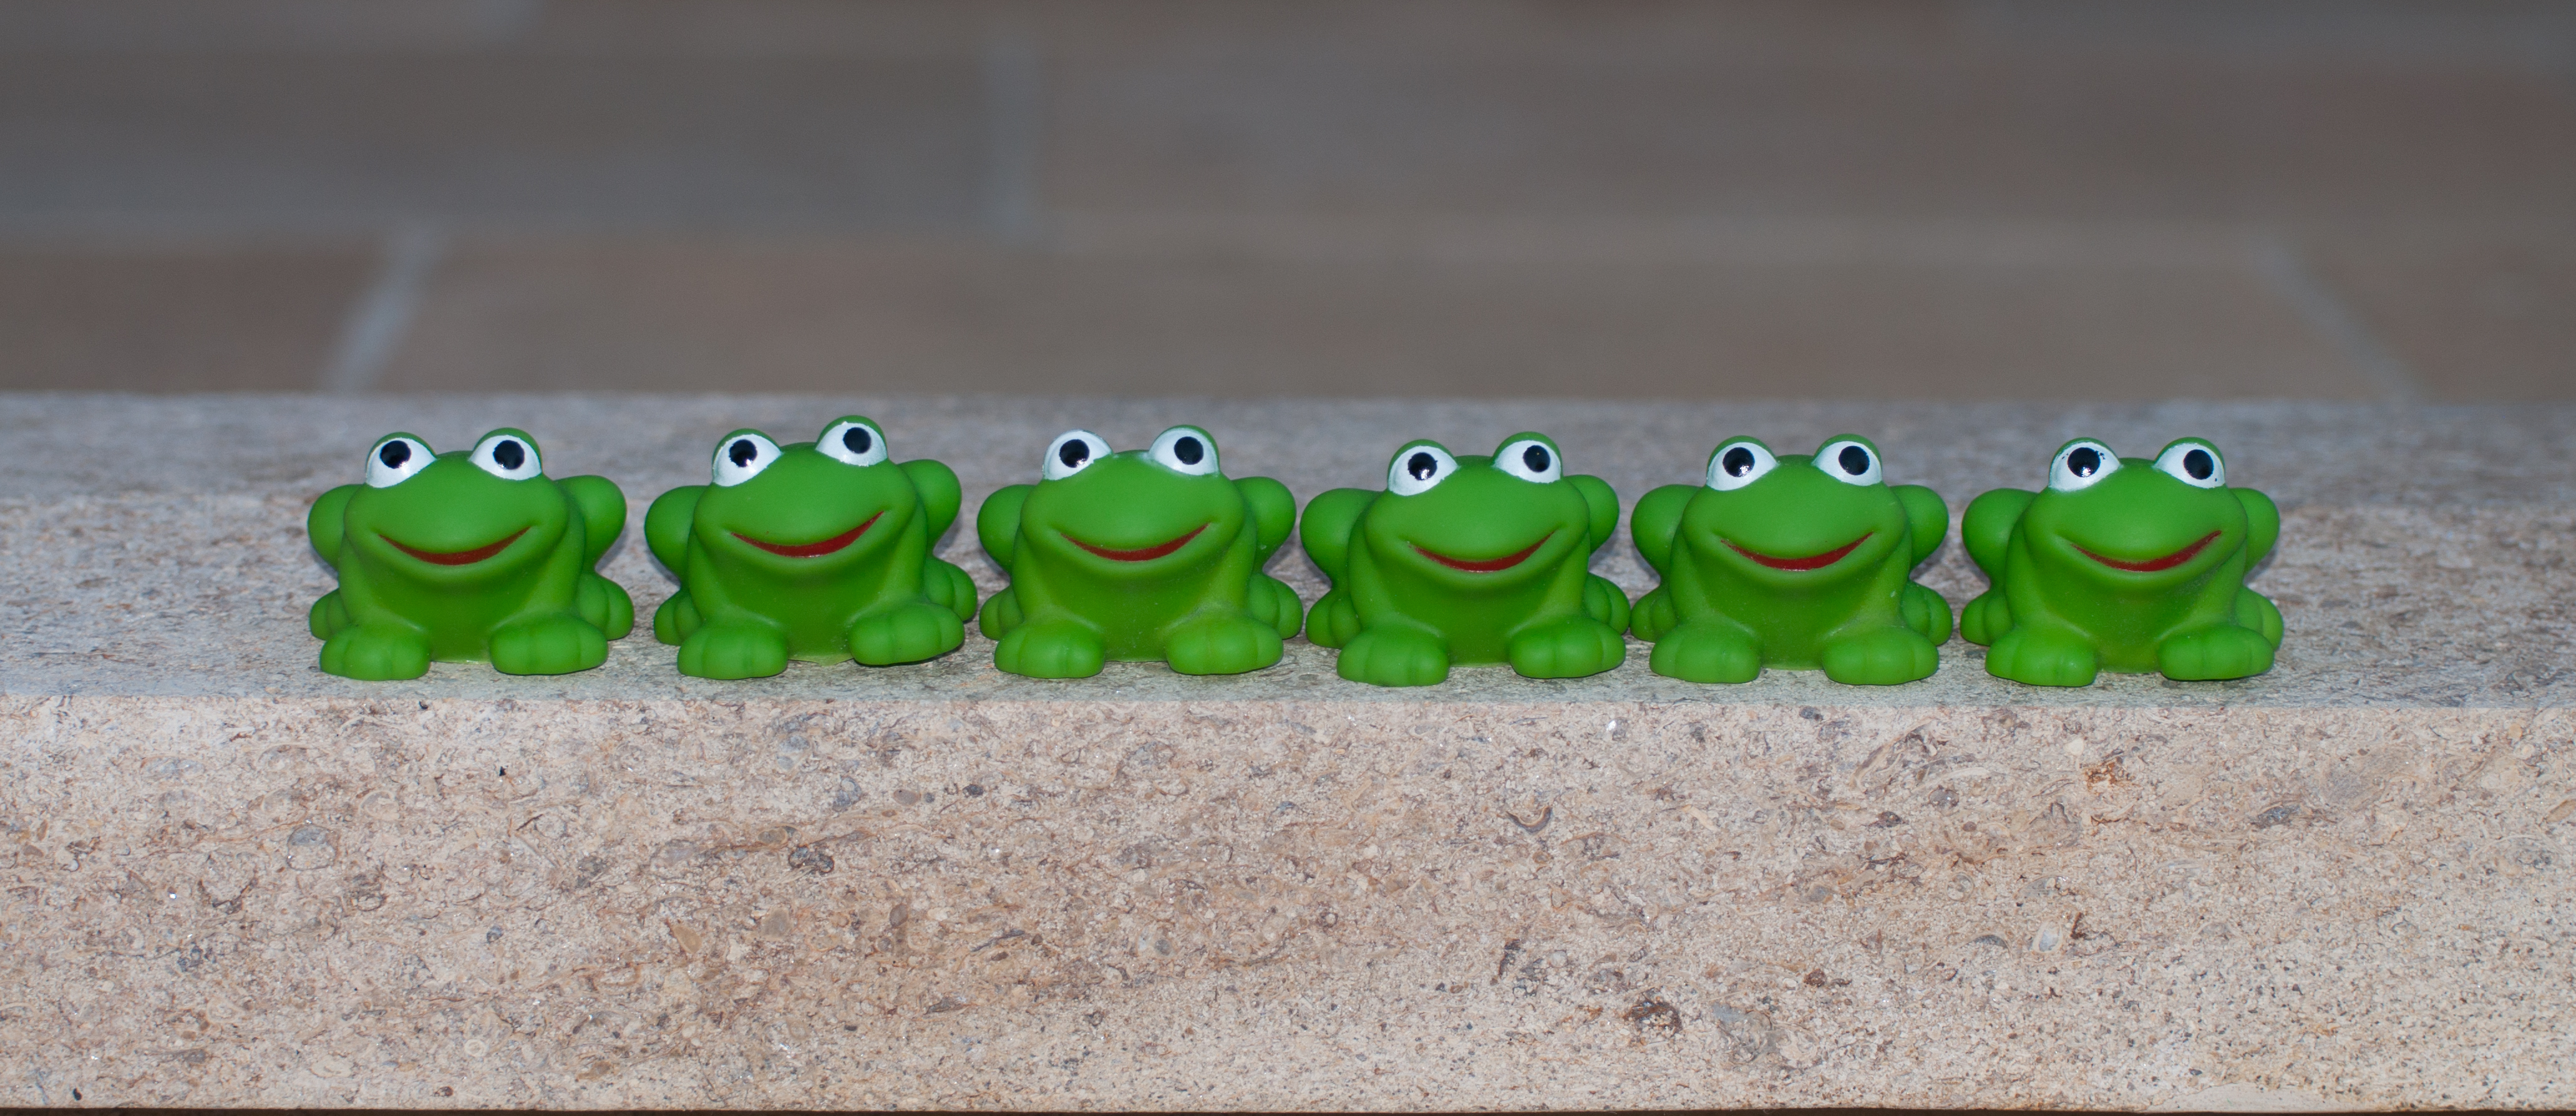 The six frogs and decision making